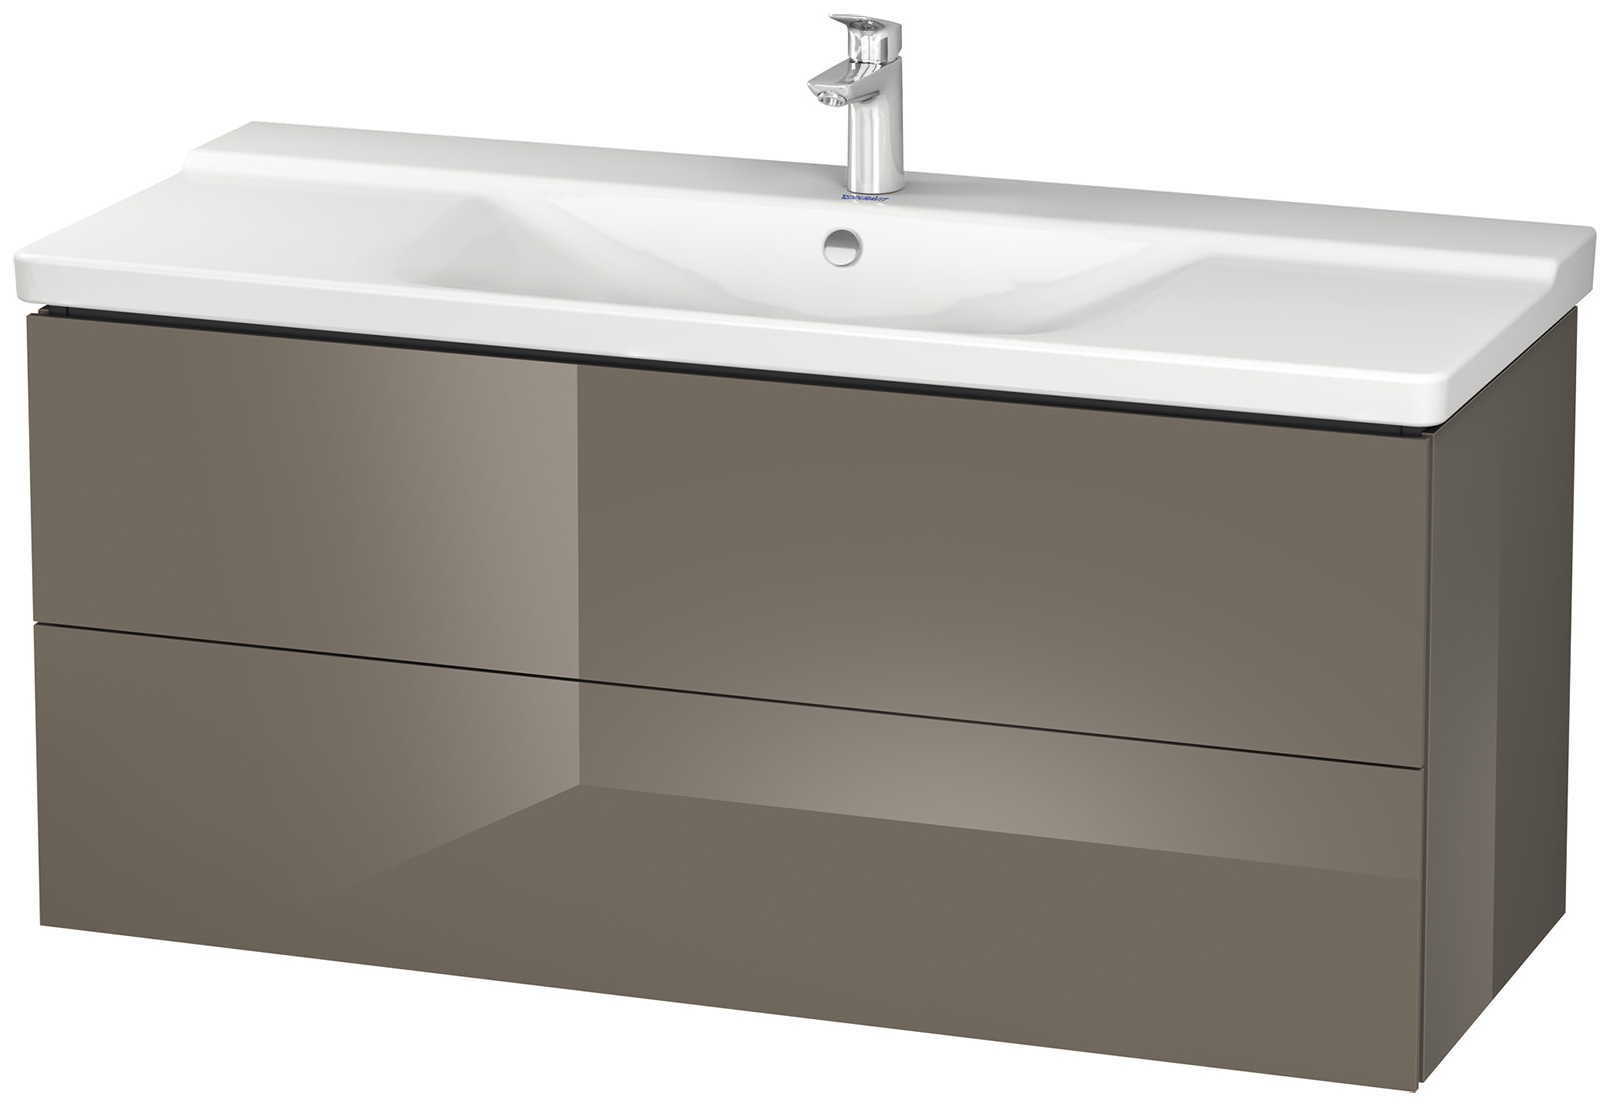 duravit l cube 1220mm wall mounted vanity unit with p3 comforts basin. Black Bedroom Furniture Sets. Home Design Ideas